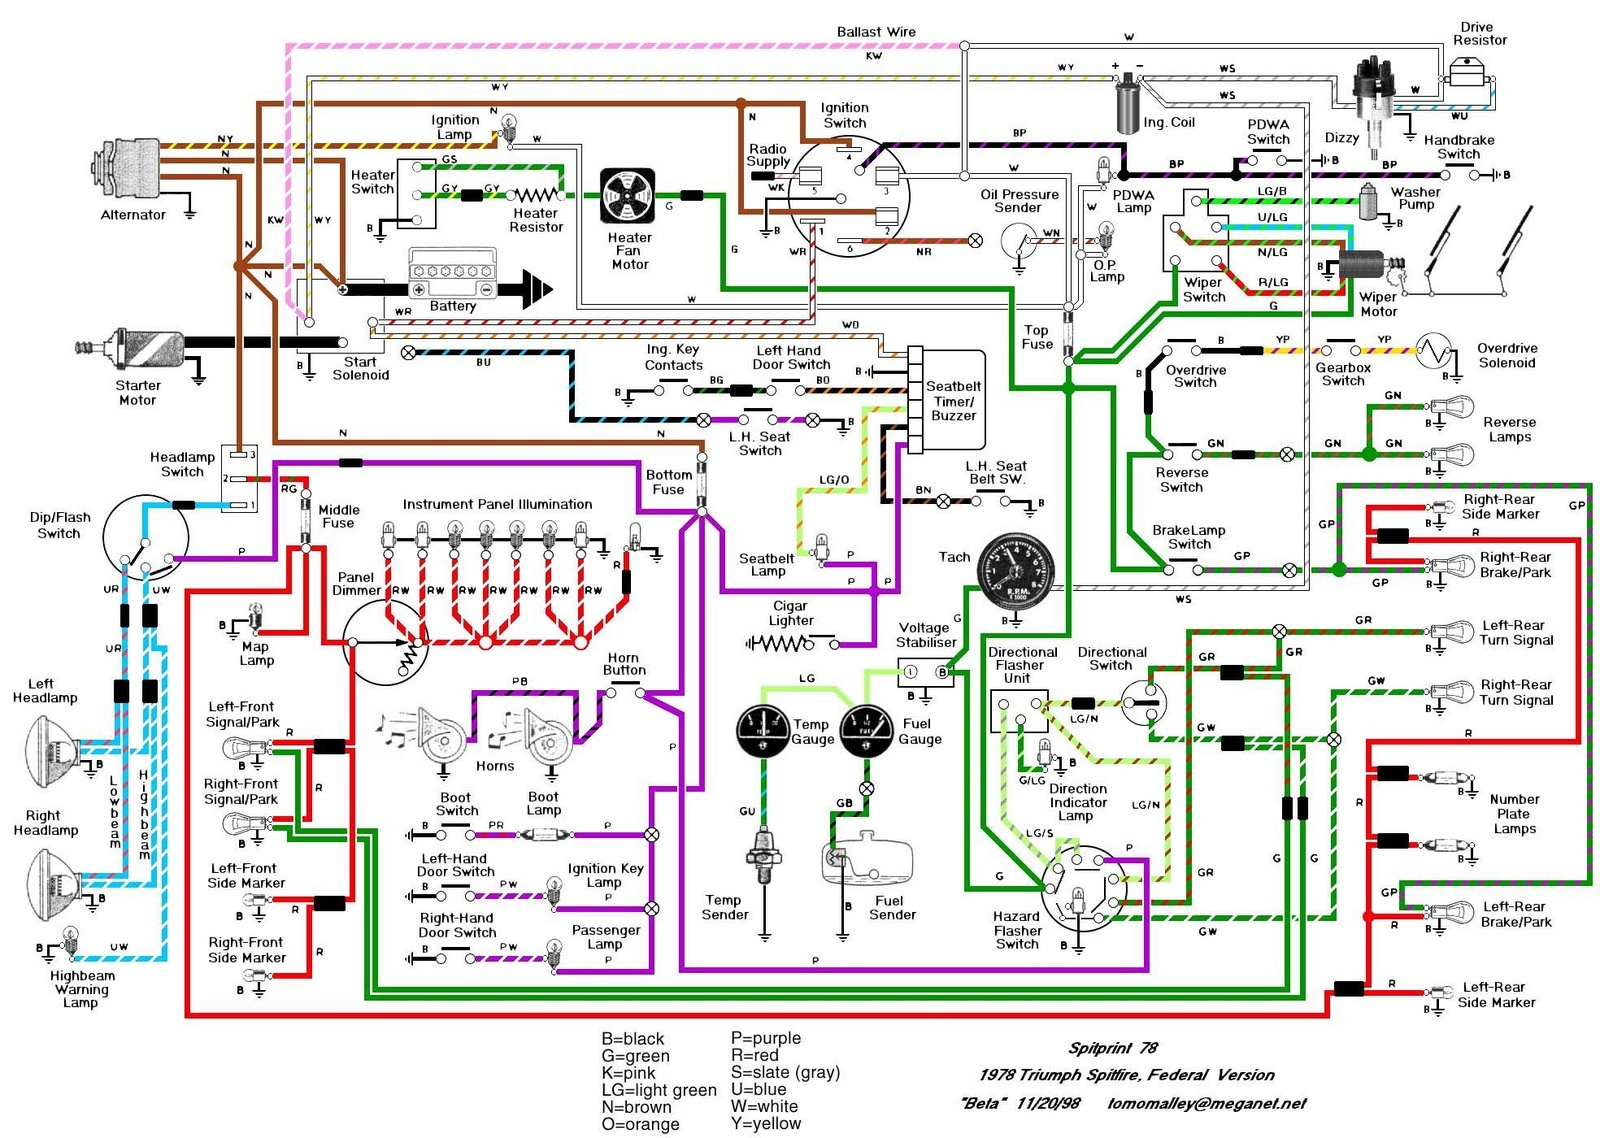 wiring diagram for 1980 mgb. wiring. wiring diagram instructions, Wiring diagram